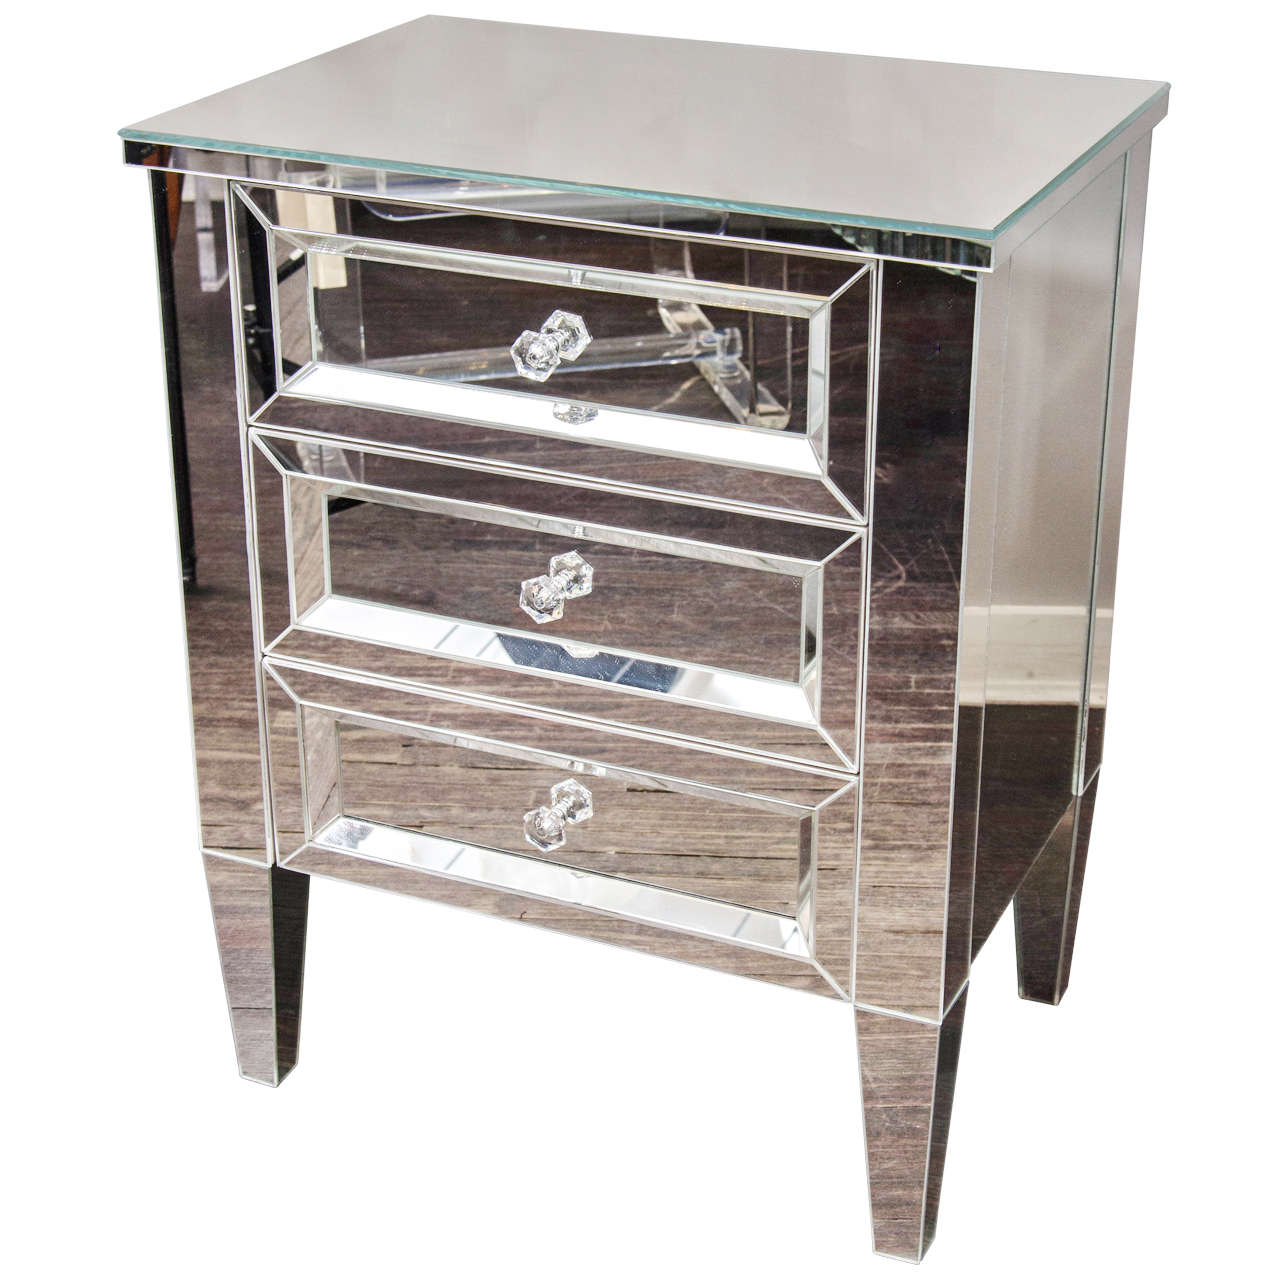 Beautiful Custom Mirrored Nightstand For Sale at 1stdibs